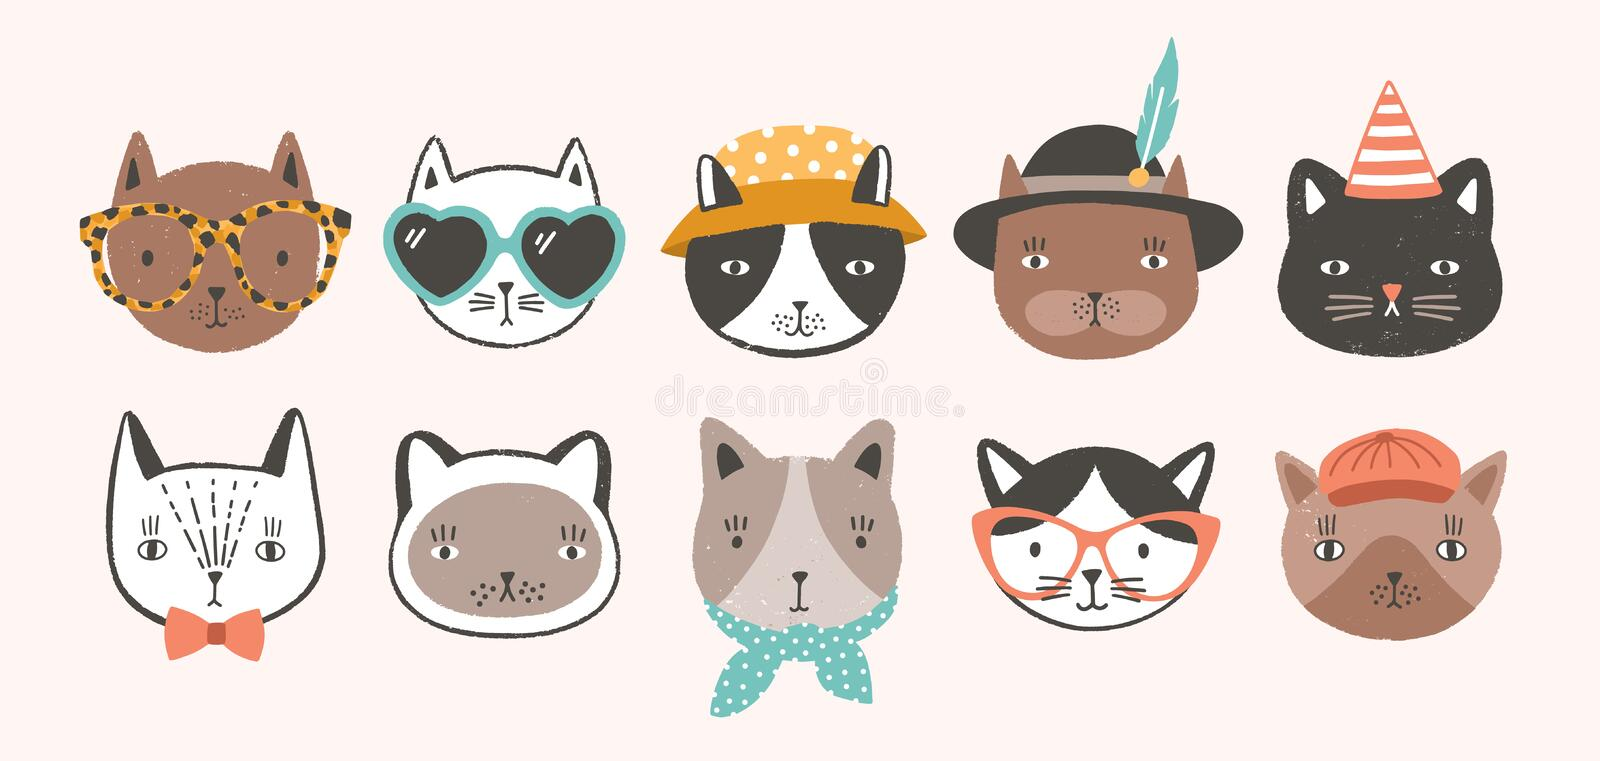 Collection of cute funny cat faces or heads wearing glasses, sunglasses and hats. Bundle of various cartoon animal royalty free illustration